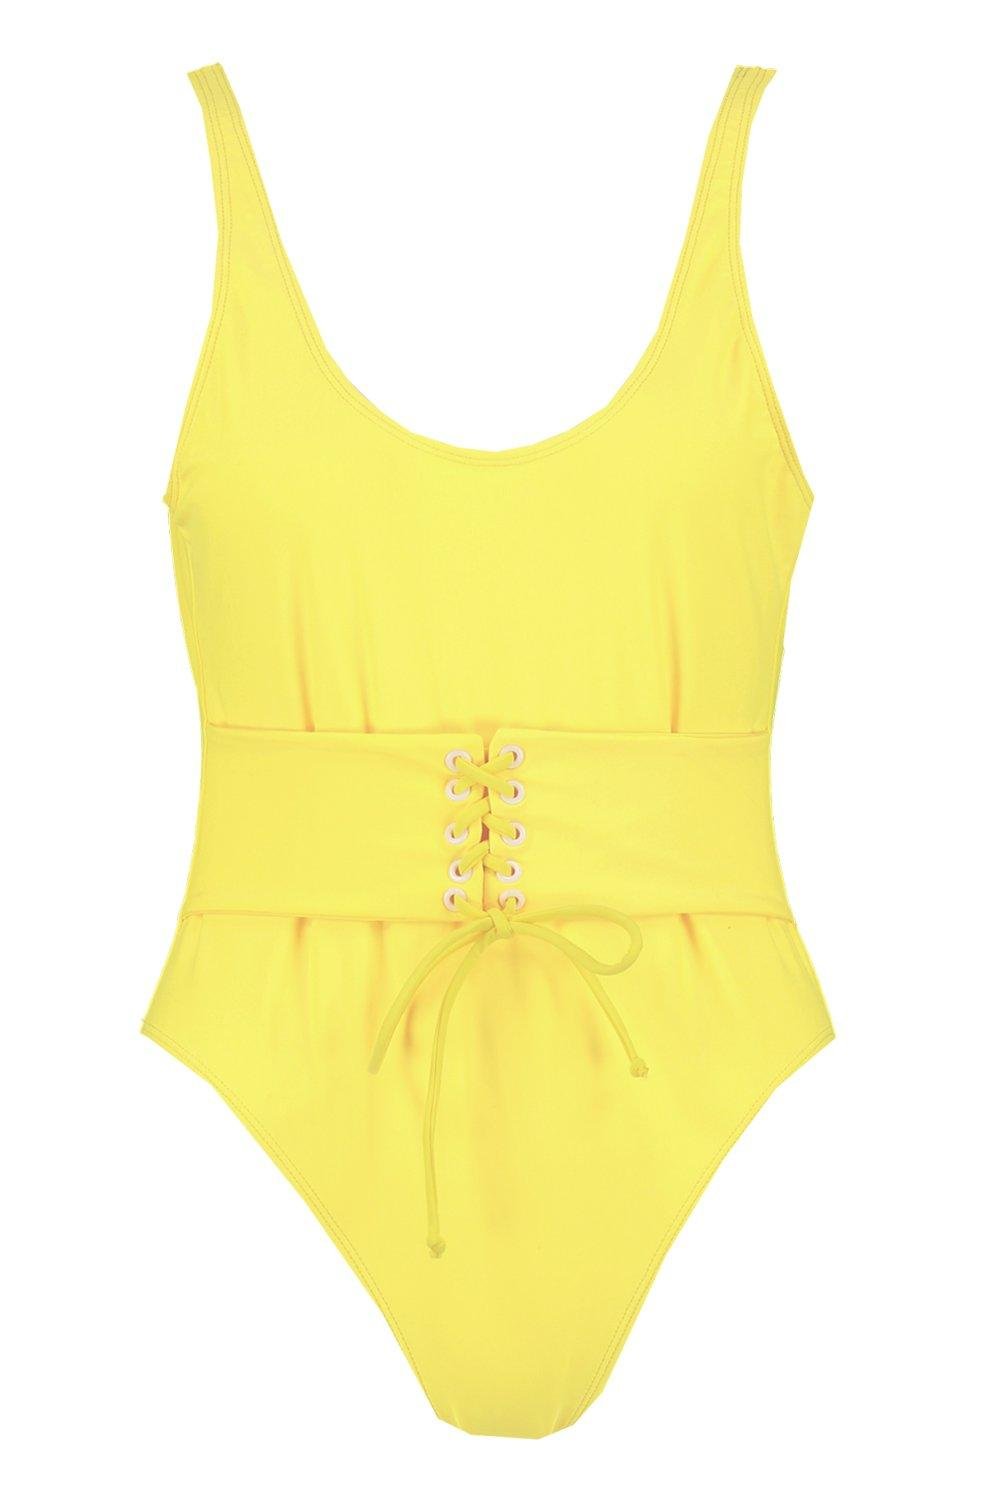 Waist Eyelet Eyelet Swimsuit yellow Swimsuit Enhance Waist Waist Eyelet yellow Enhance w6qxxB4U